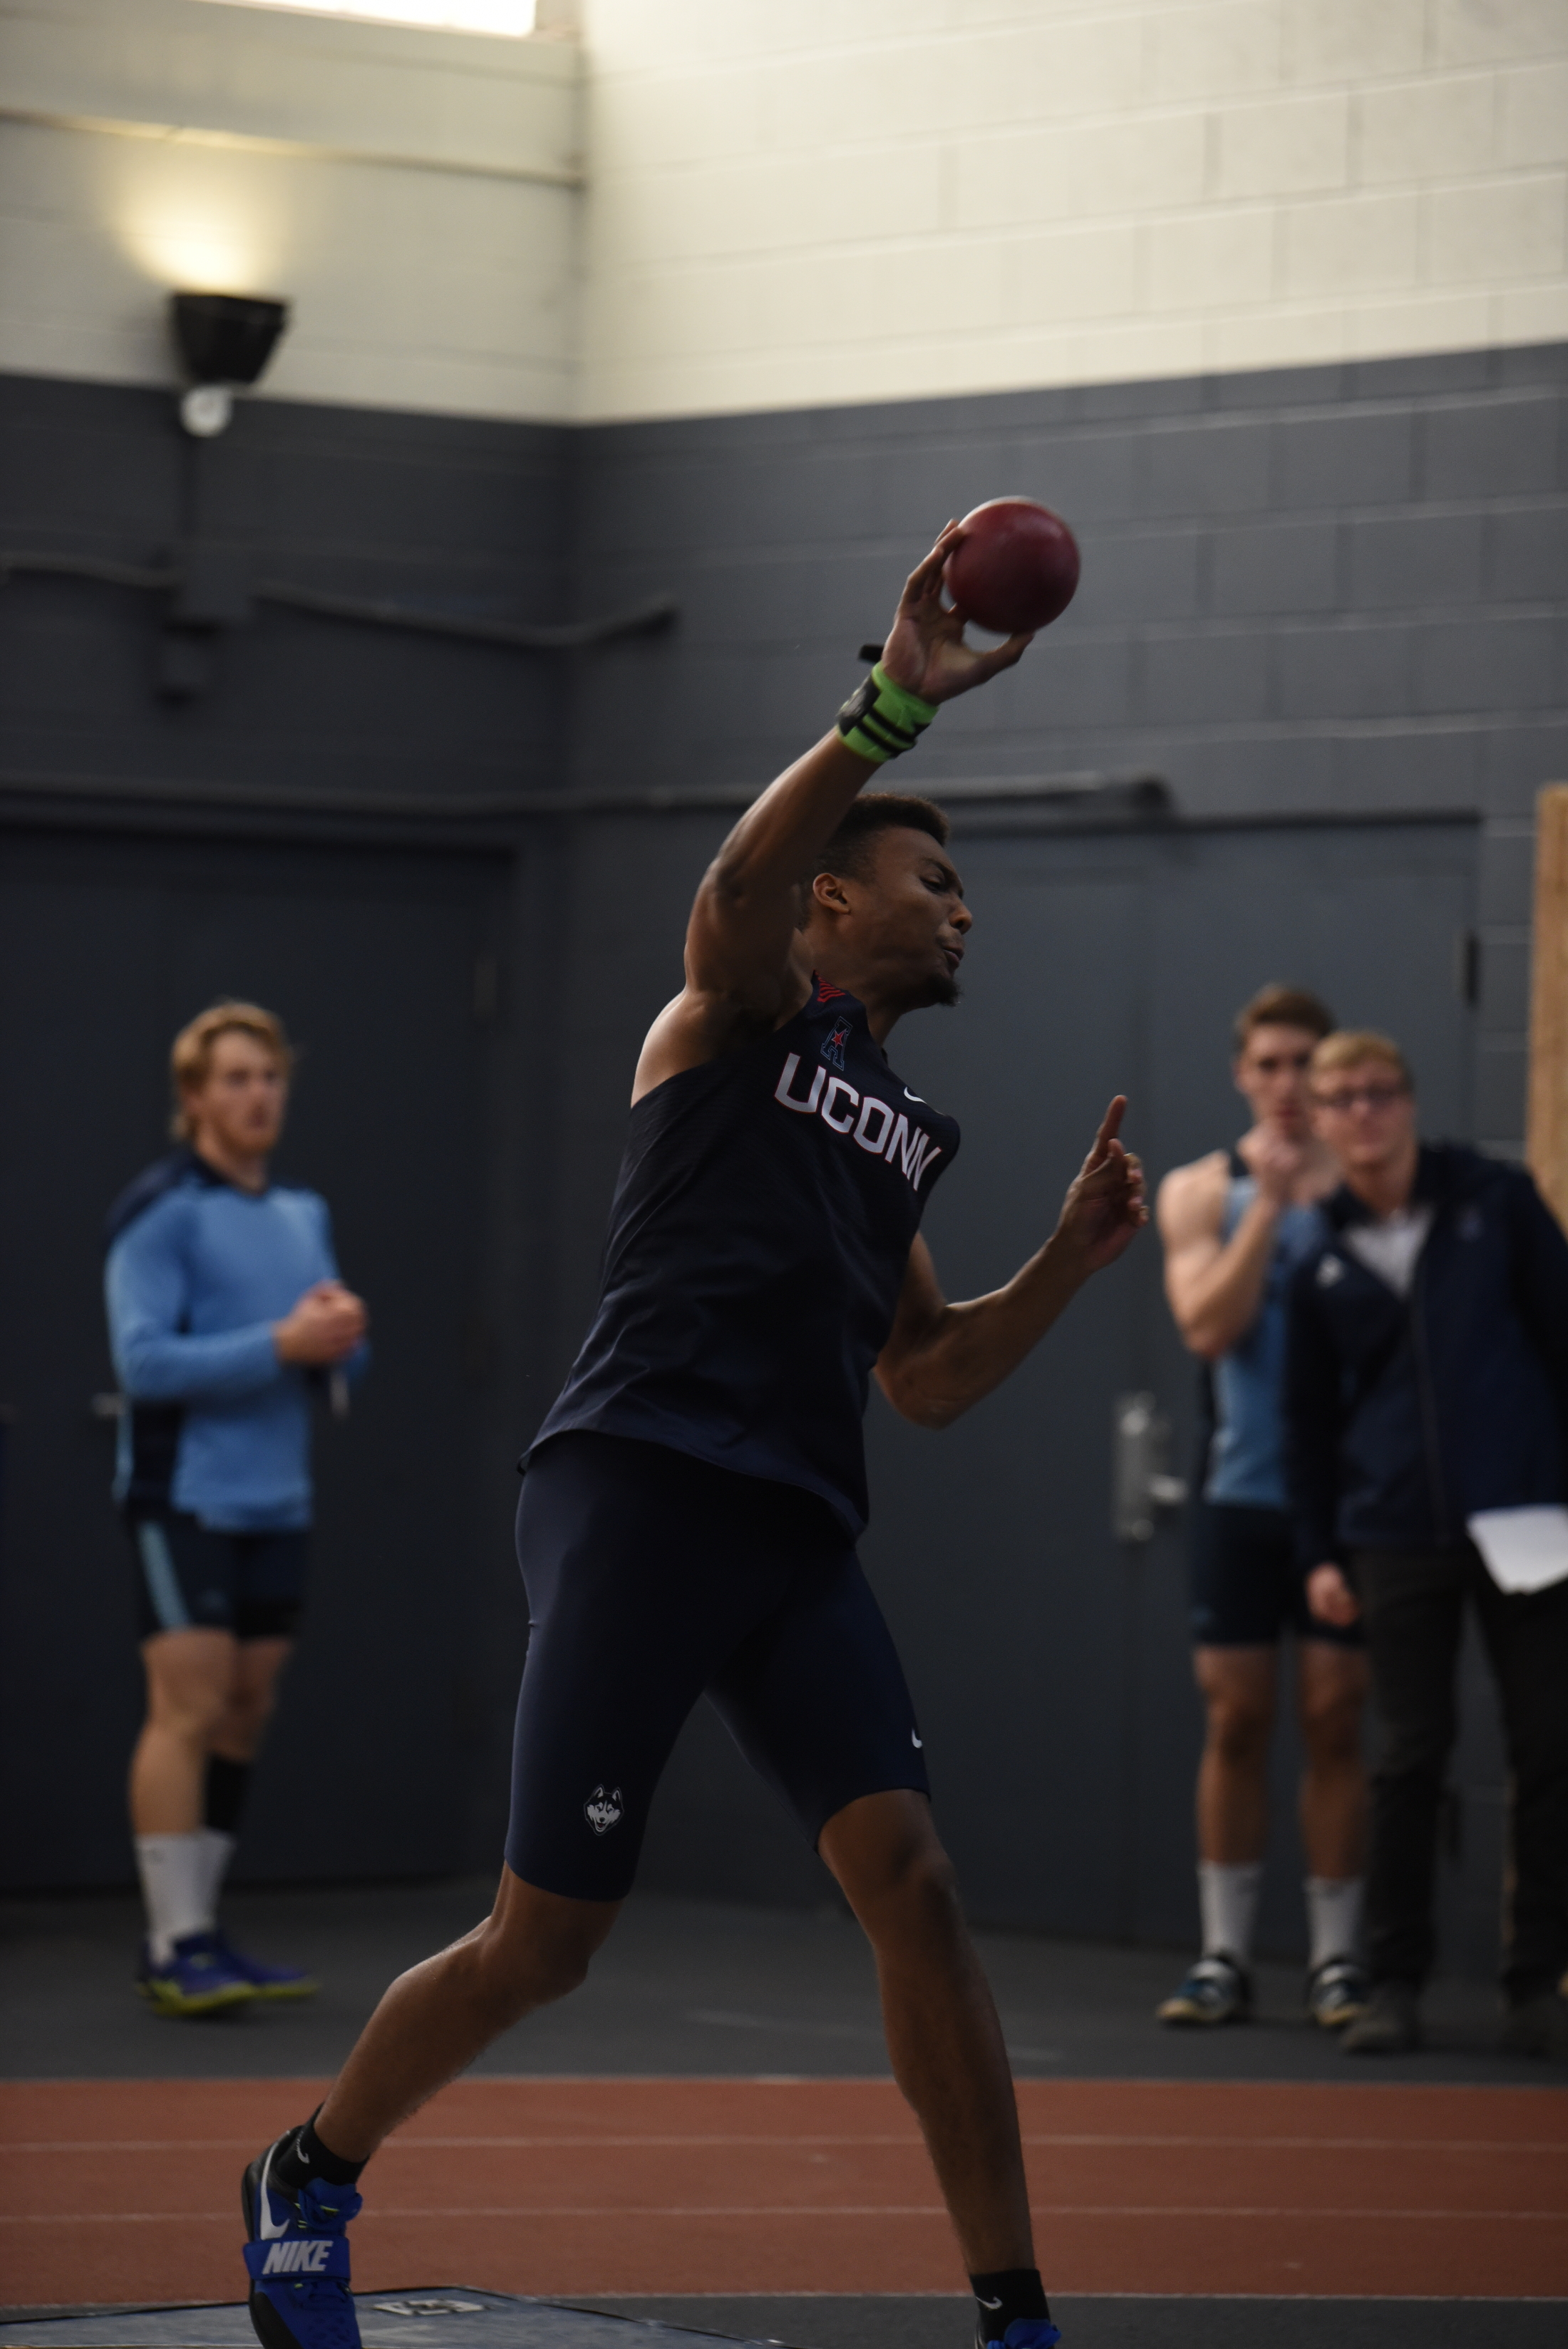 UConn Track & Field hard at practice in Greer Fieldhouse (Charlotte Lao/The Daily Campus)